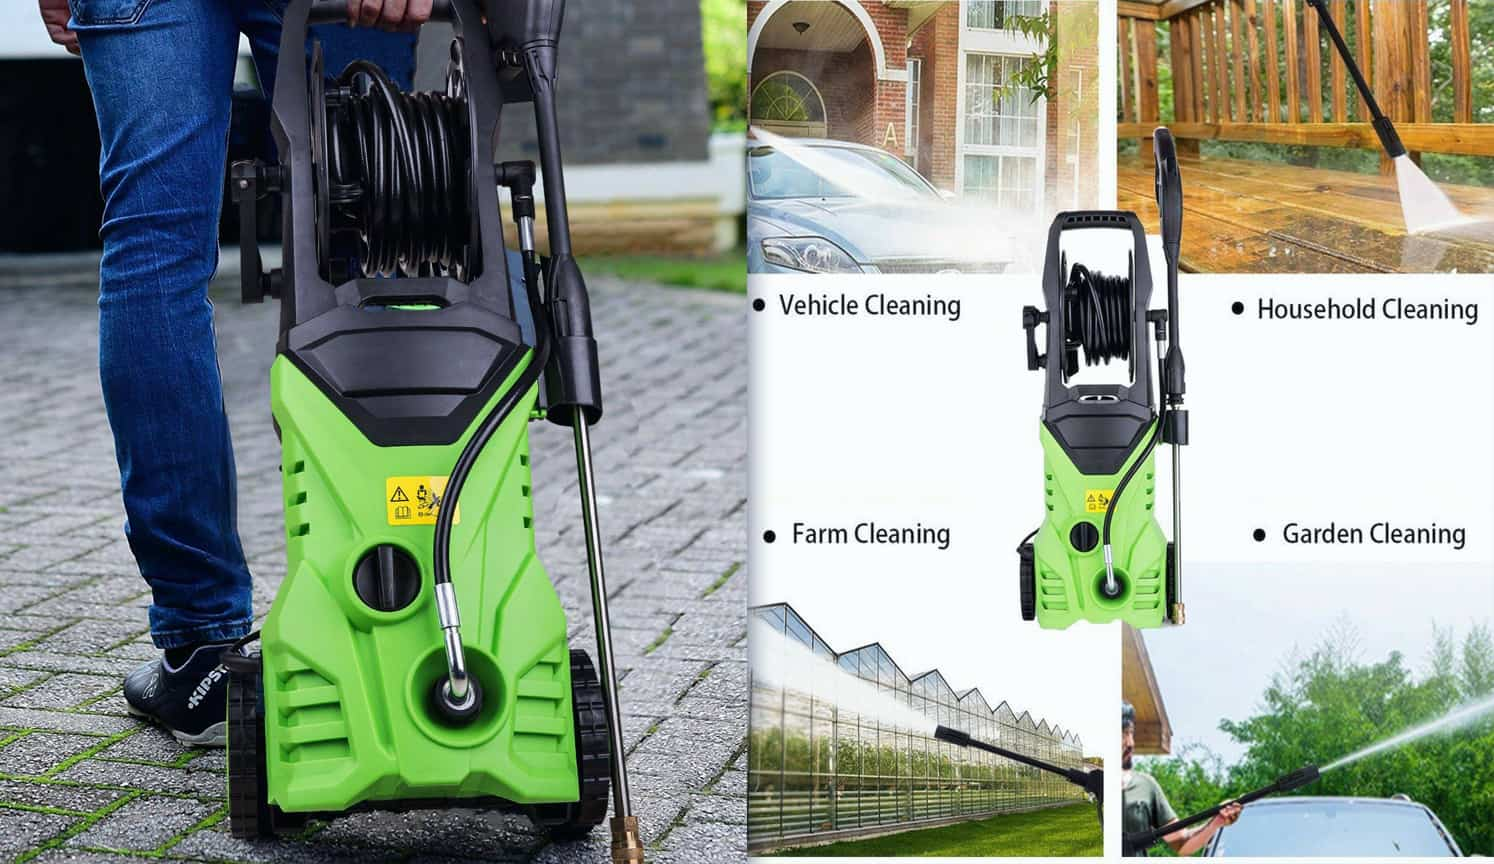 Portable Pressure Washer as the second related product of the Best Electric Pressure Washer